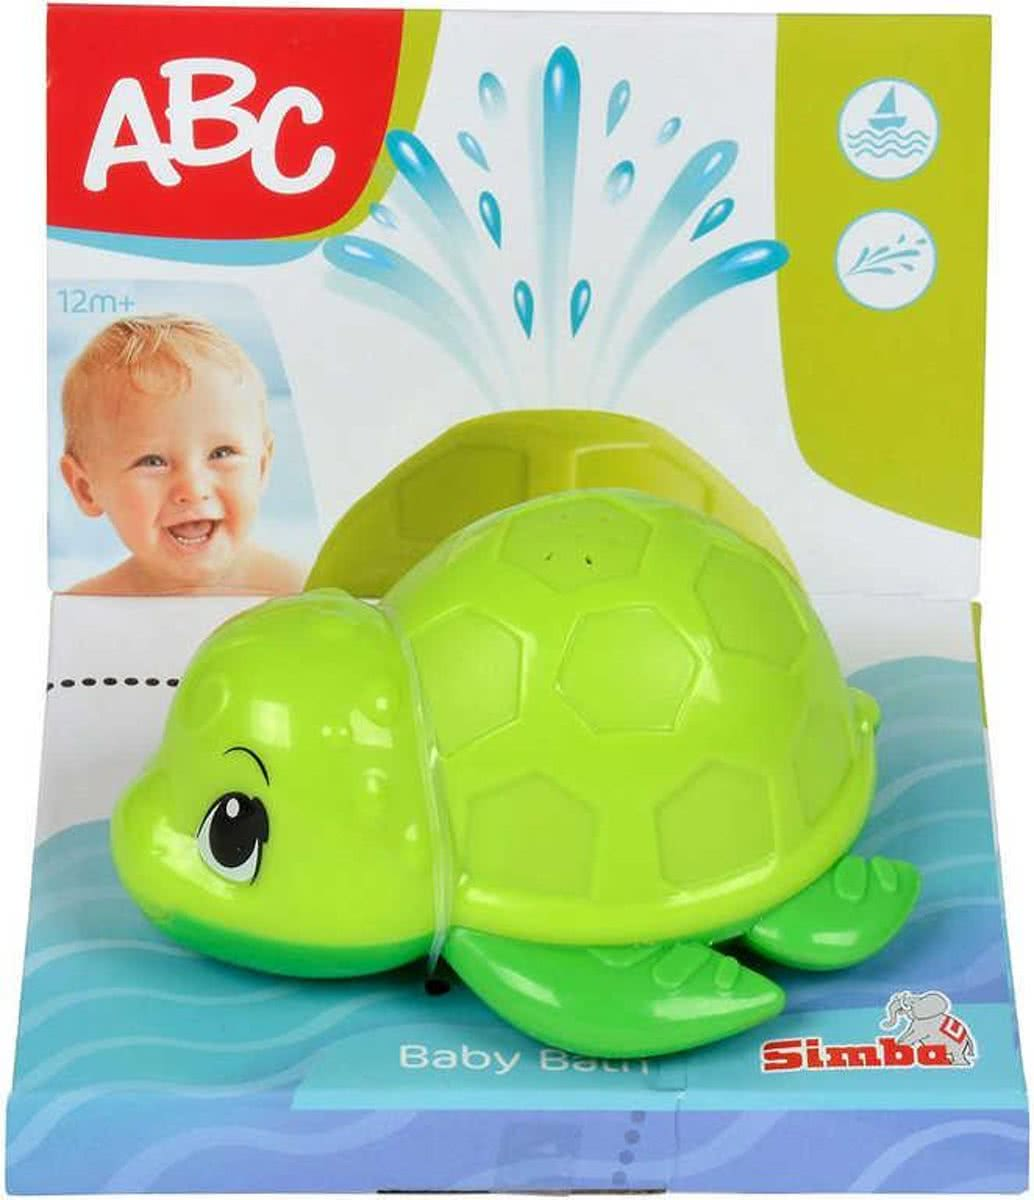 ABC Bad Schildpad